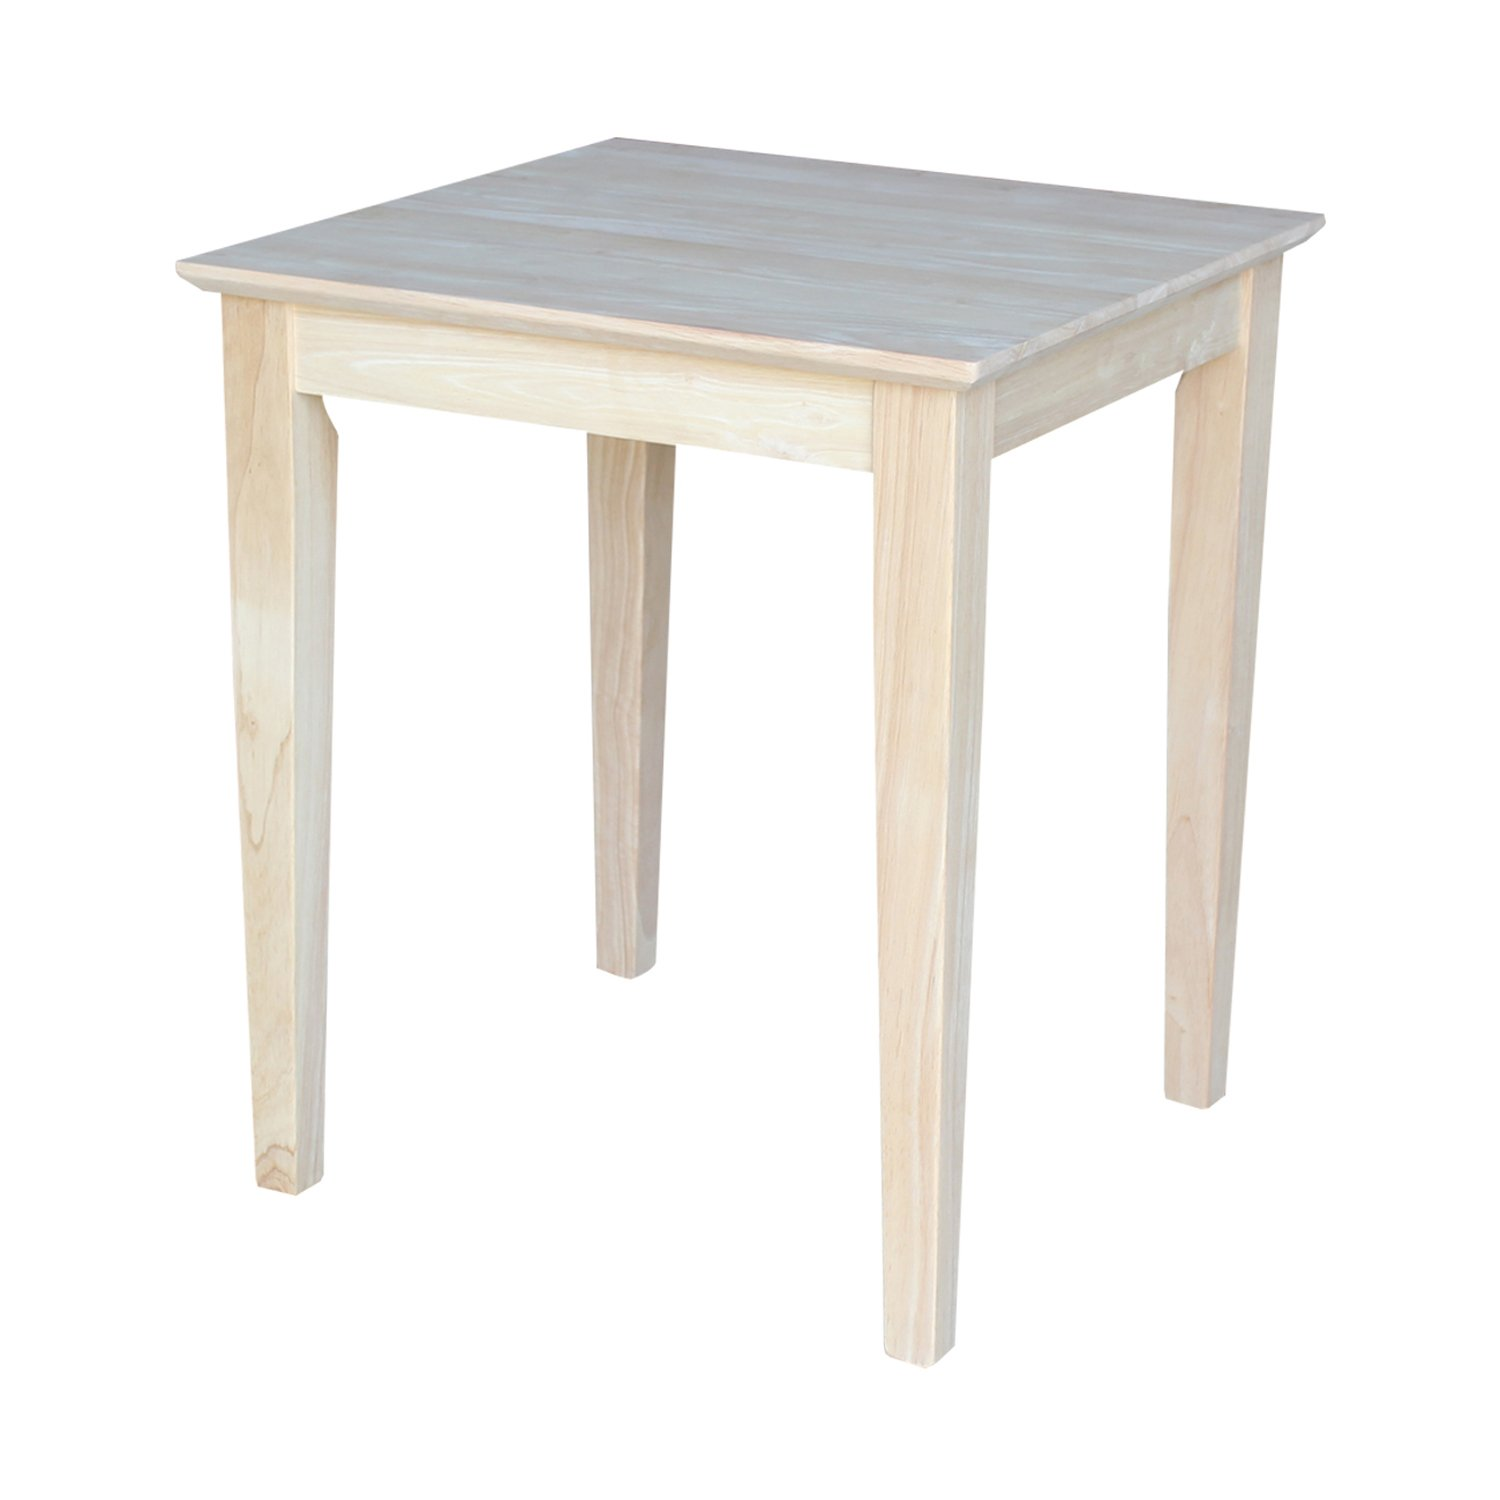 international concepts tall shaker end table mnjl unfinished wood accent kitchen dining white set round placemats outdoor chair small rectangular patio large drop leaf metal bar